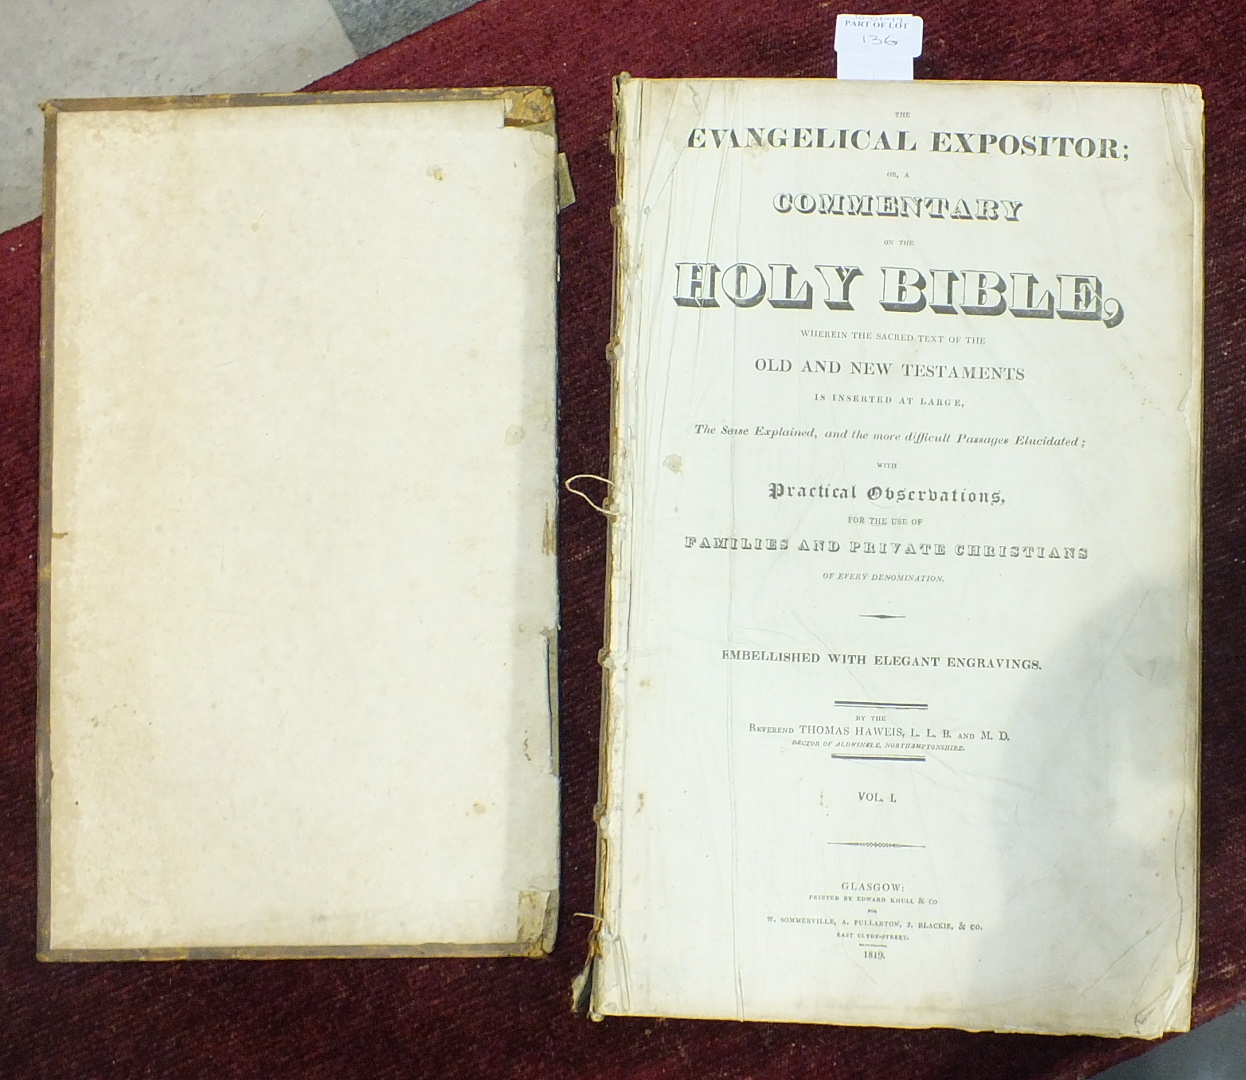 Lot 136 - The Evangelical Expositor; Or A Commentary on the Holy Bible by the Reverend Thomas Hawels Volume I,